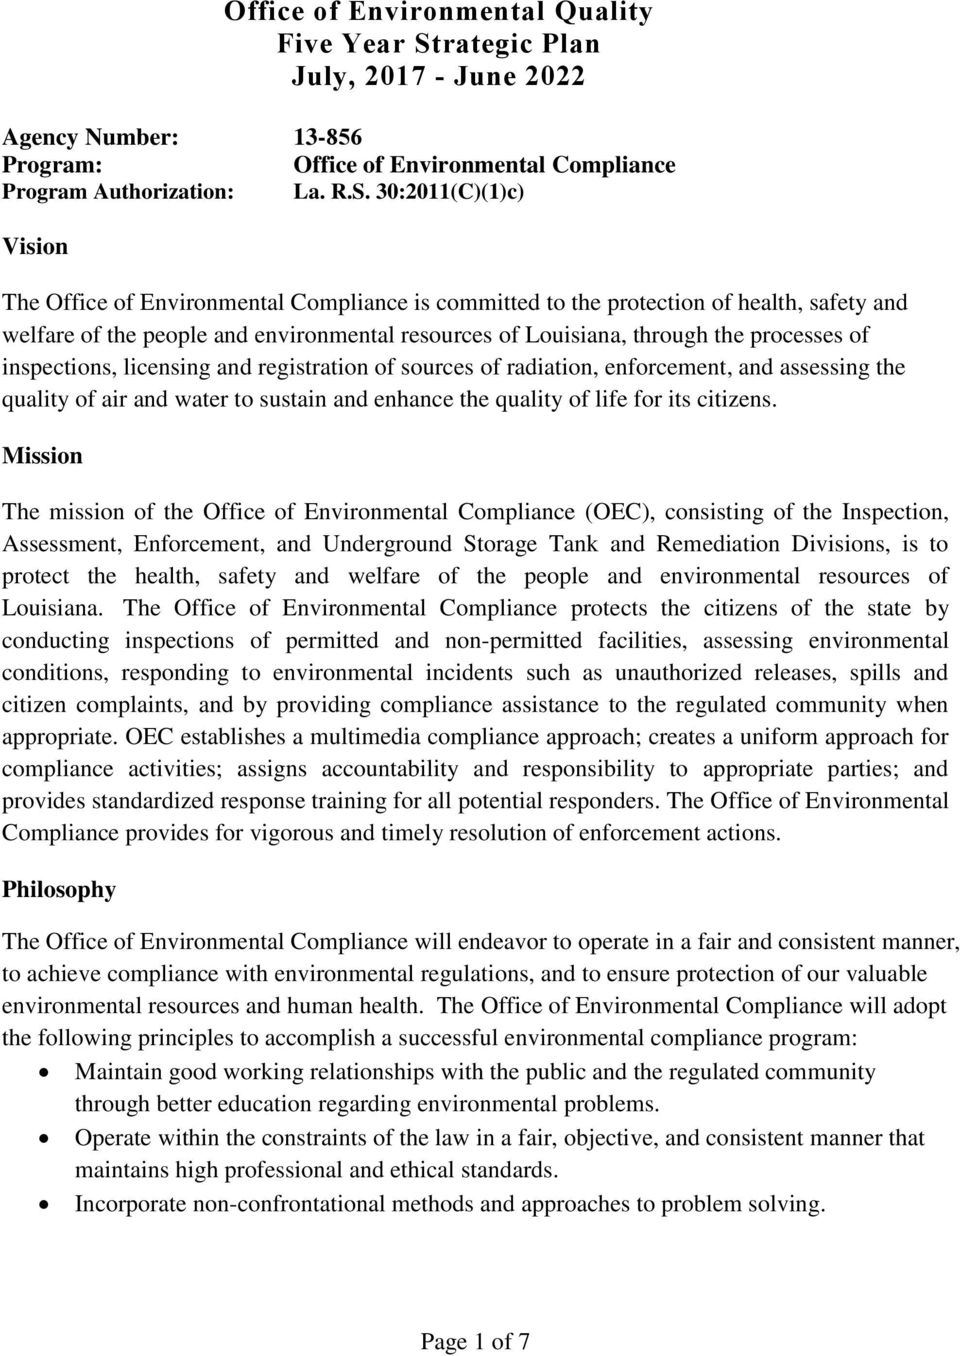 30:2011(C)(1)c) Vision The Office of Environmental Compliance is committed to the protection of health, safety and welfare of the people and environmental resources of Louisiana, through the